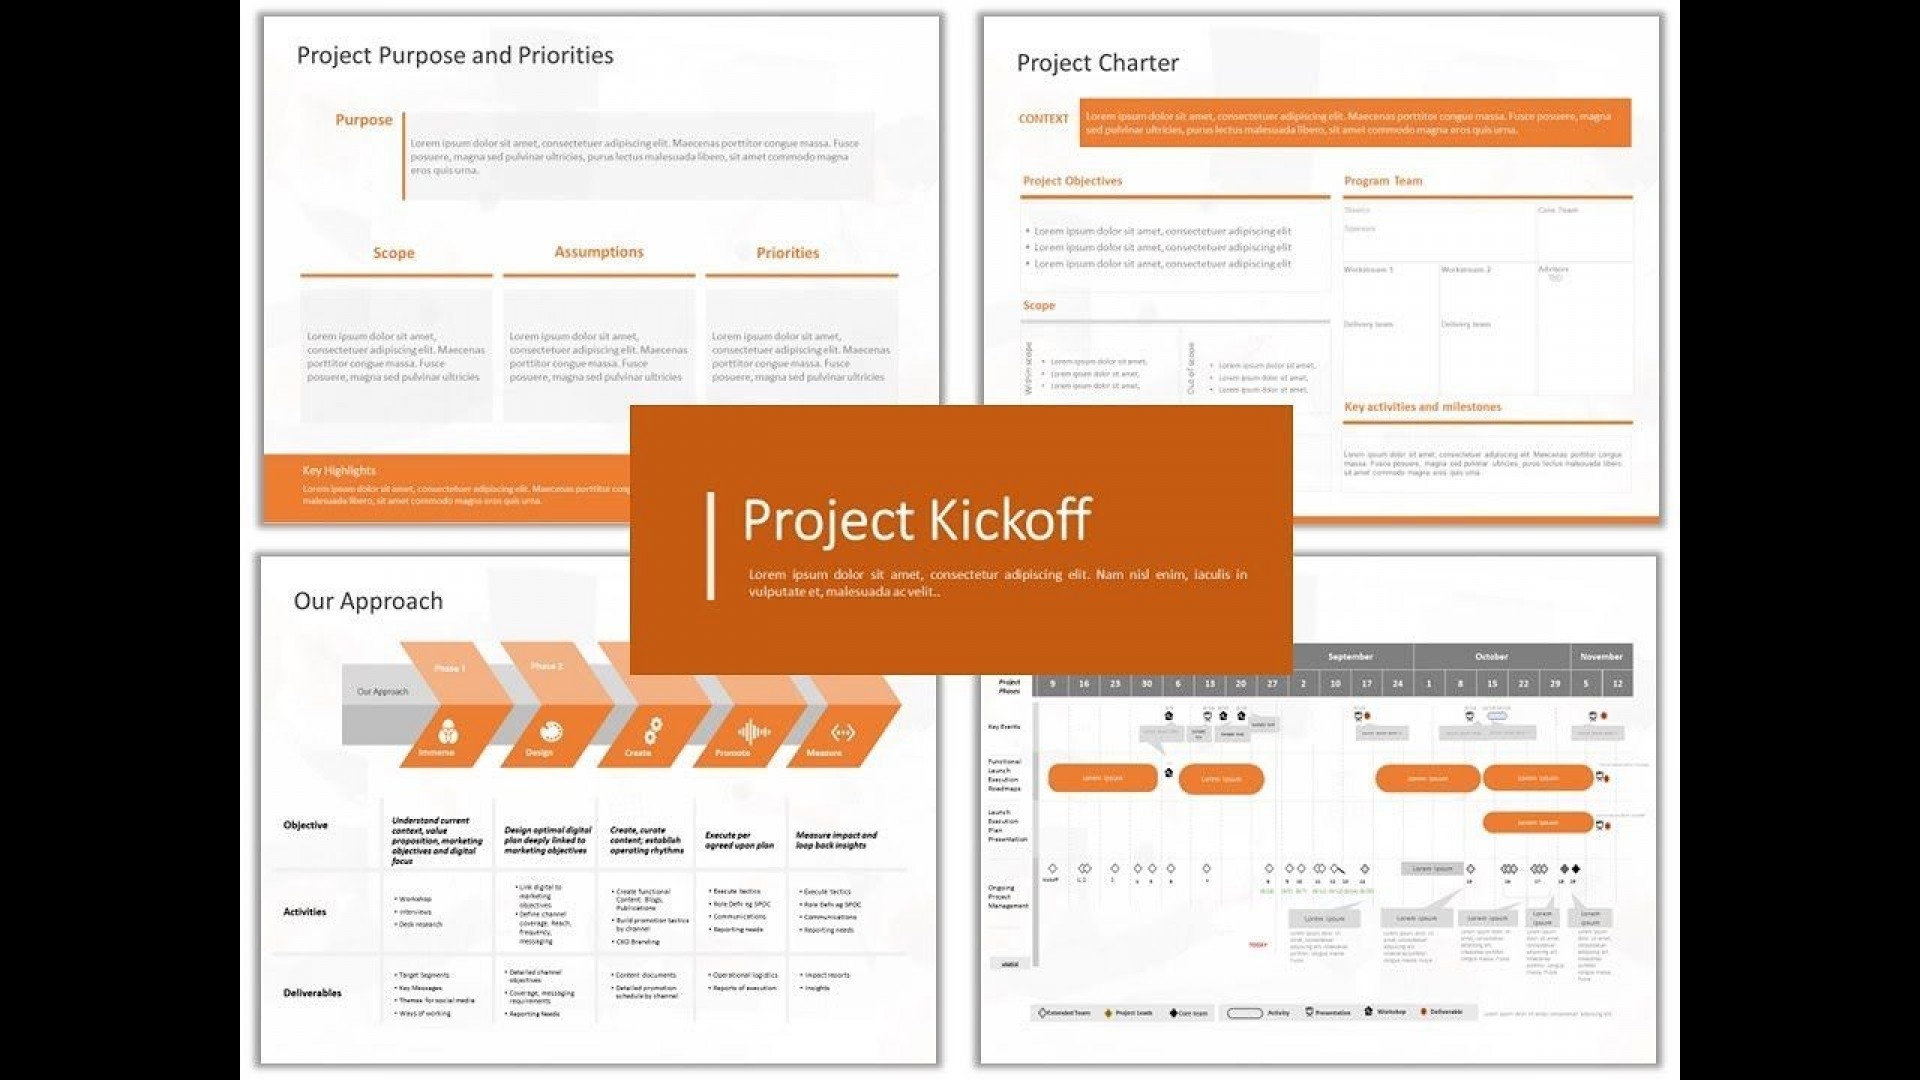 007 Wonderful Project Kick Off Template Ppt Image  Meeting Management Kickoff1920